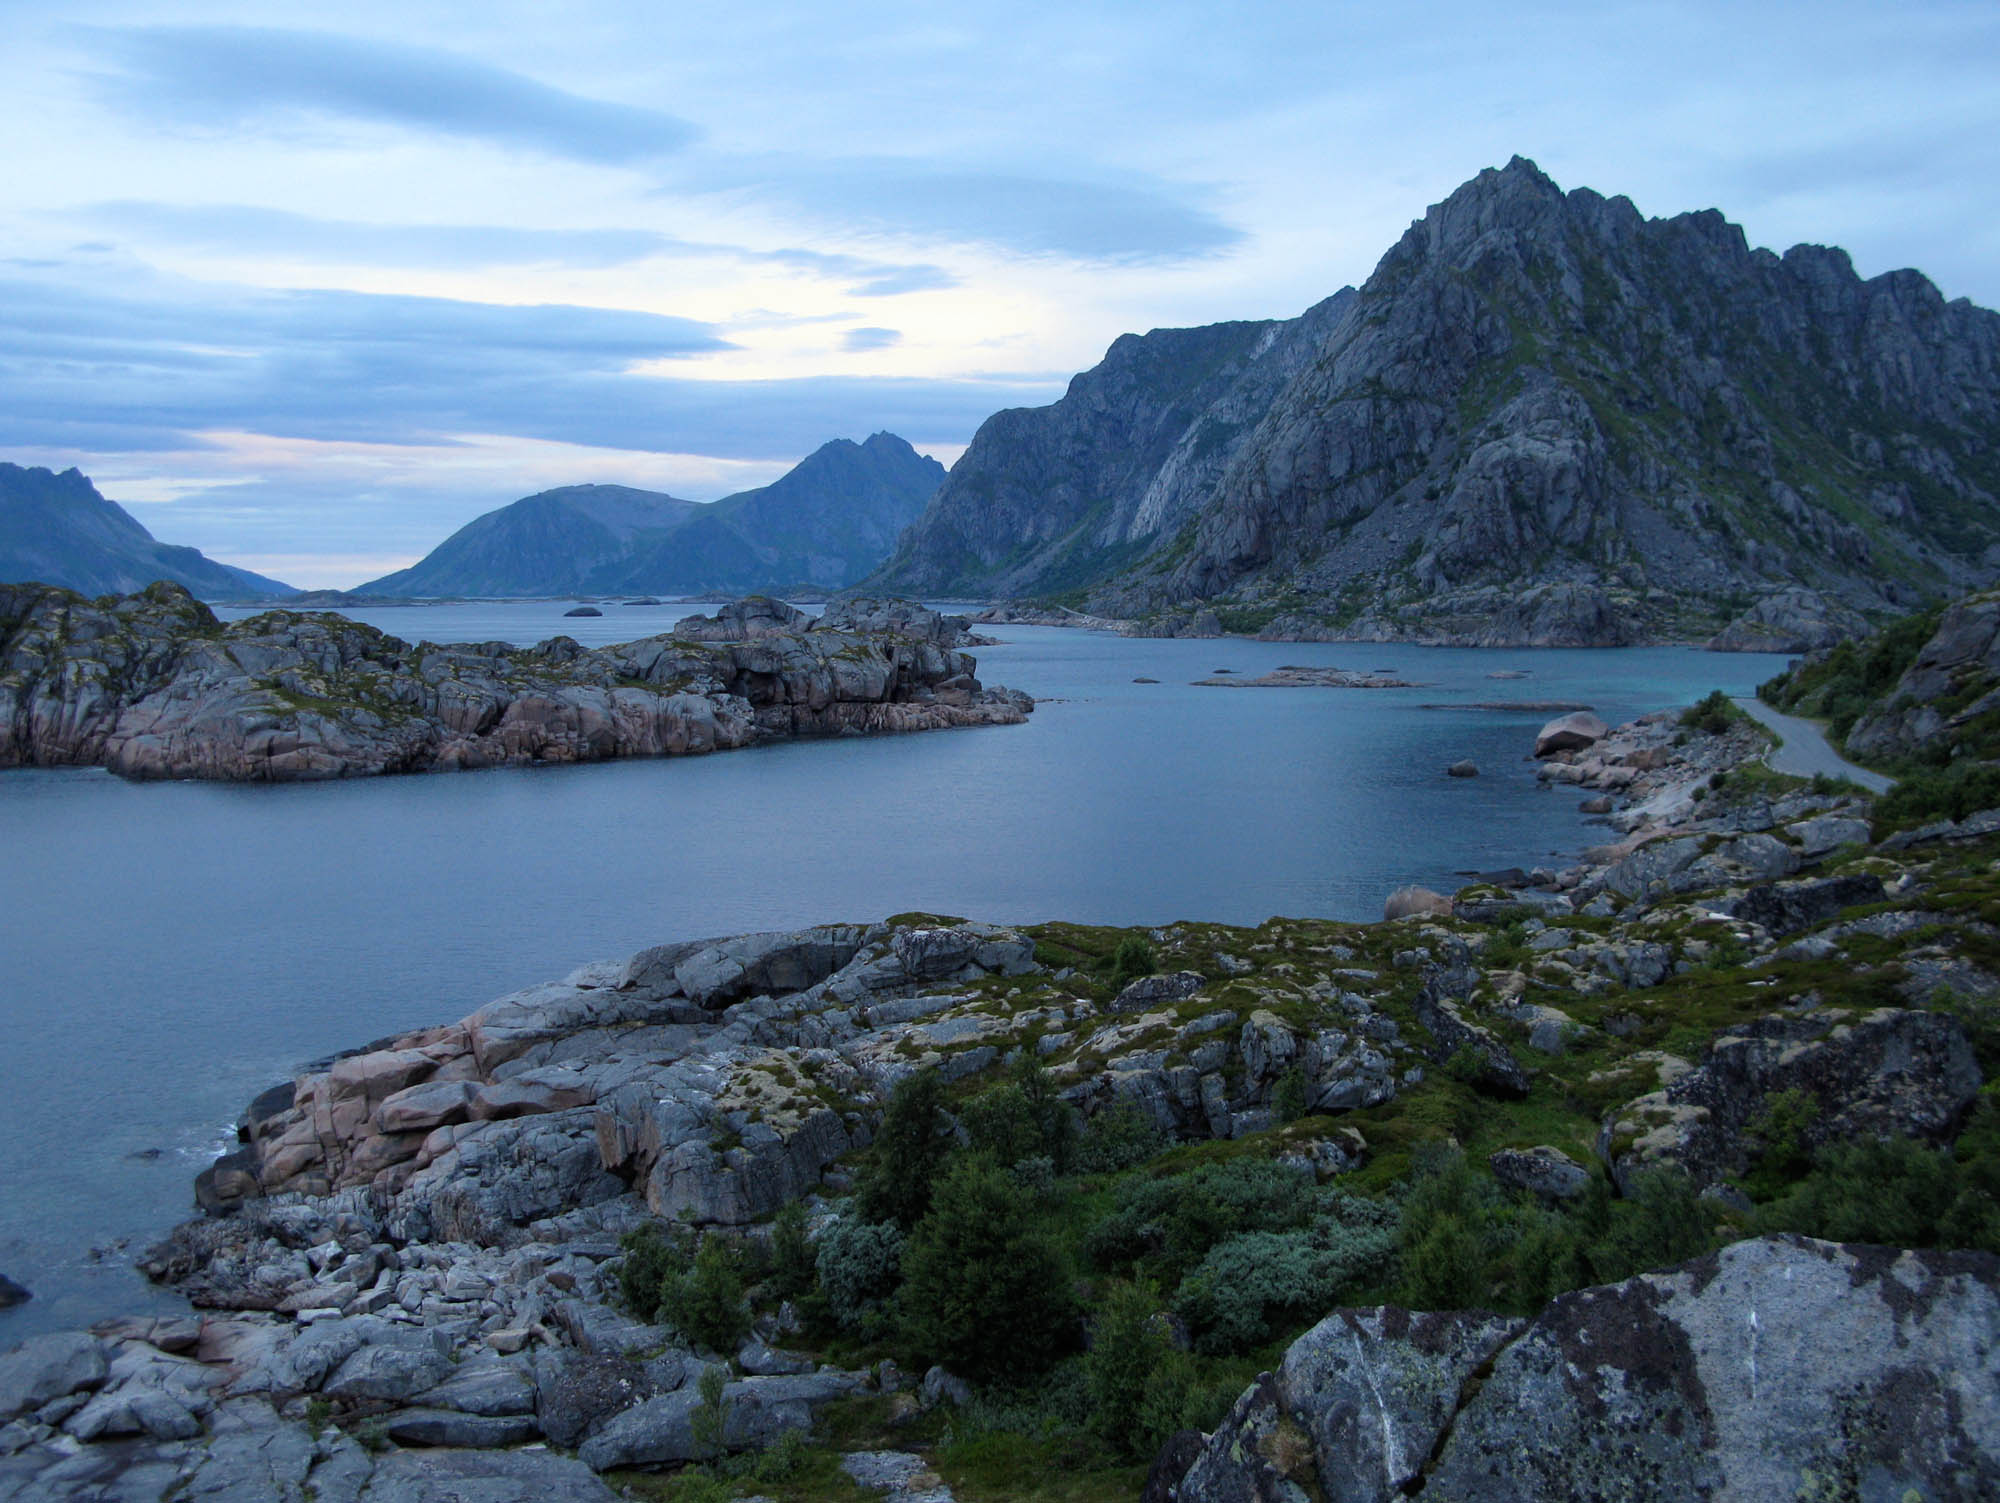 norwegen-lofoten-abend-small